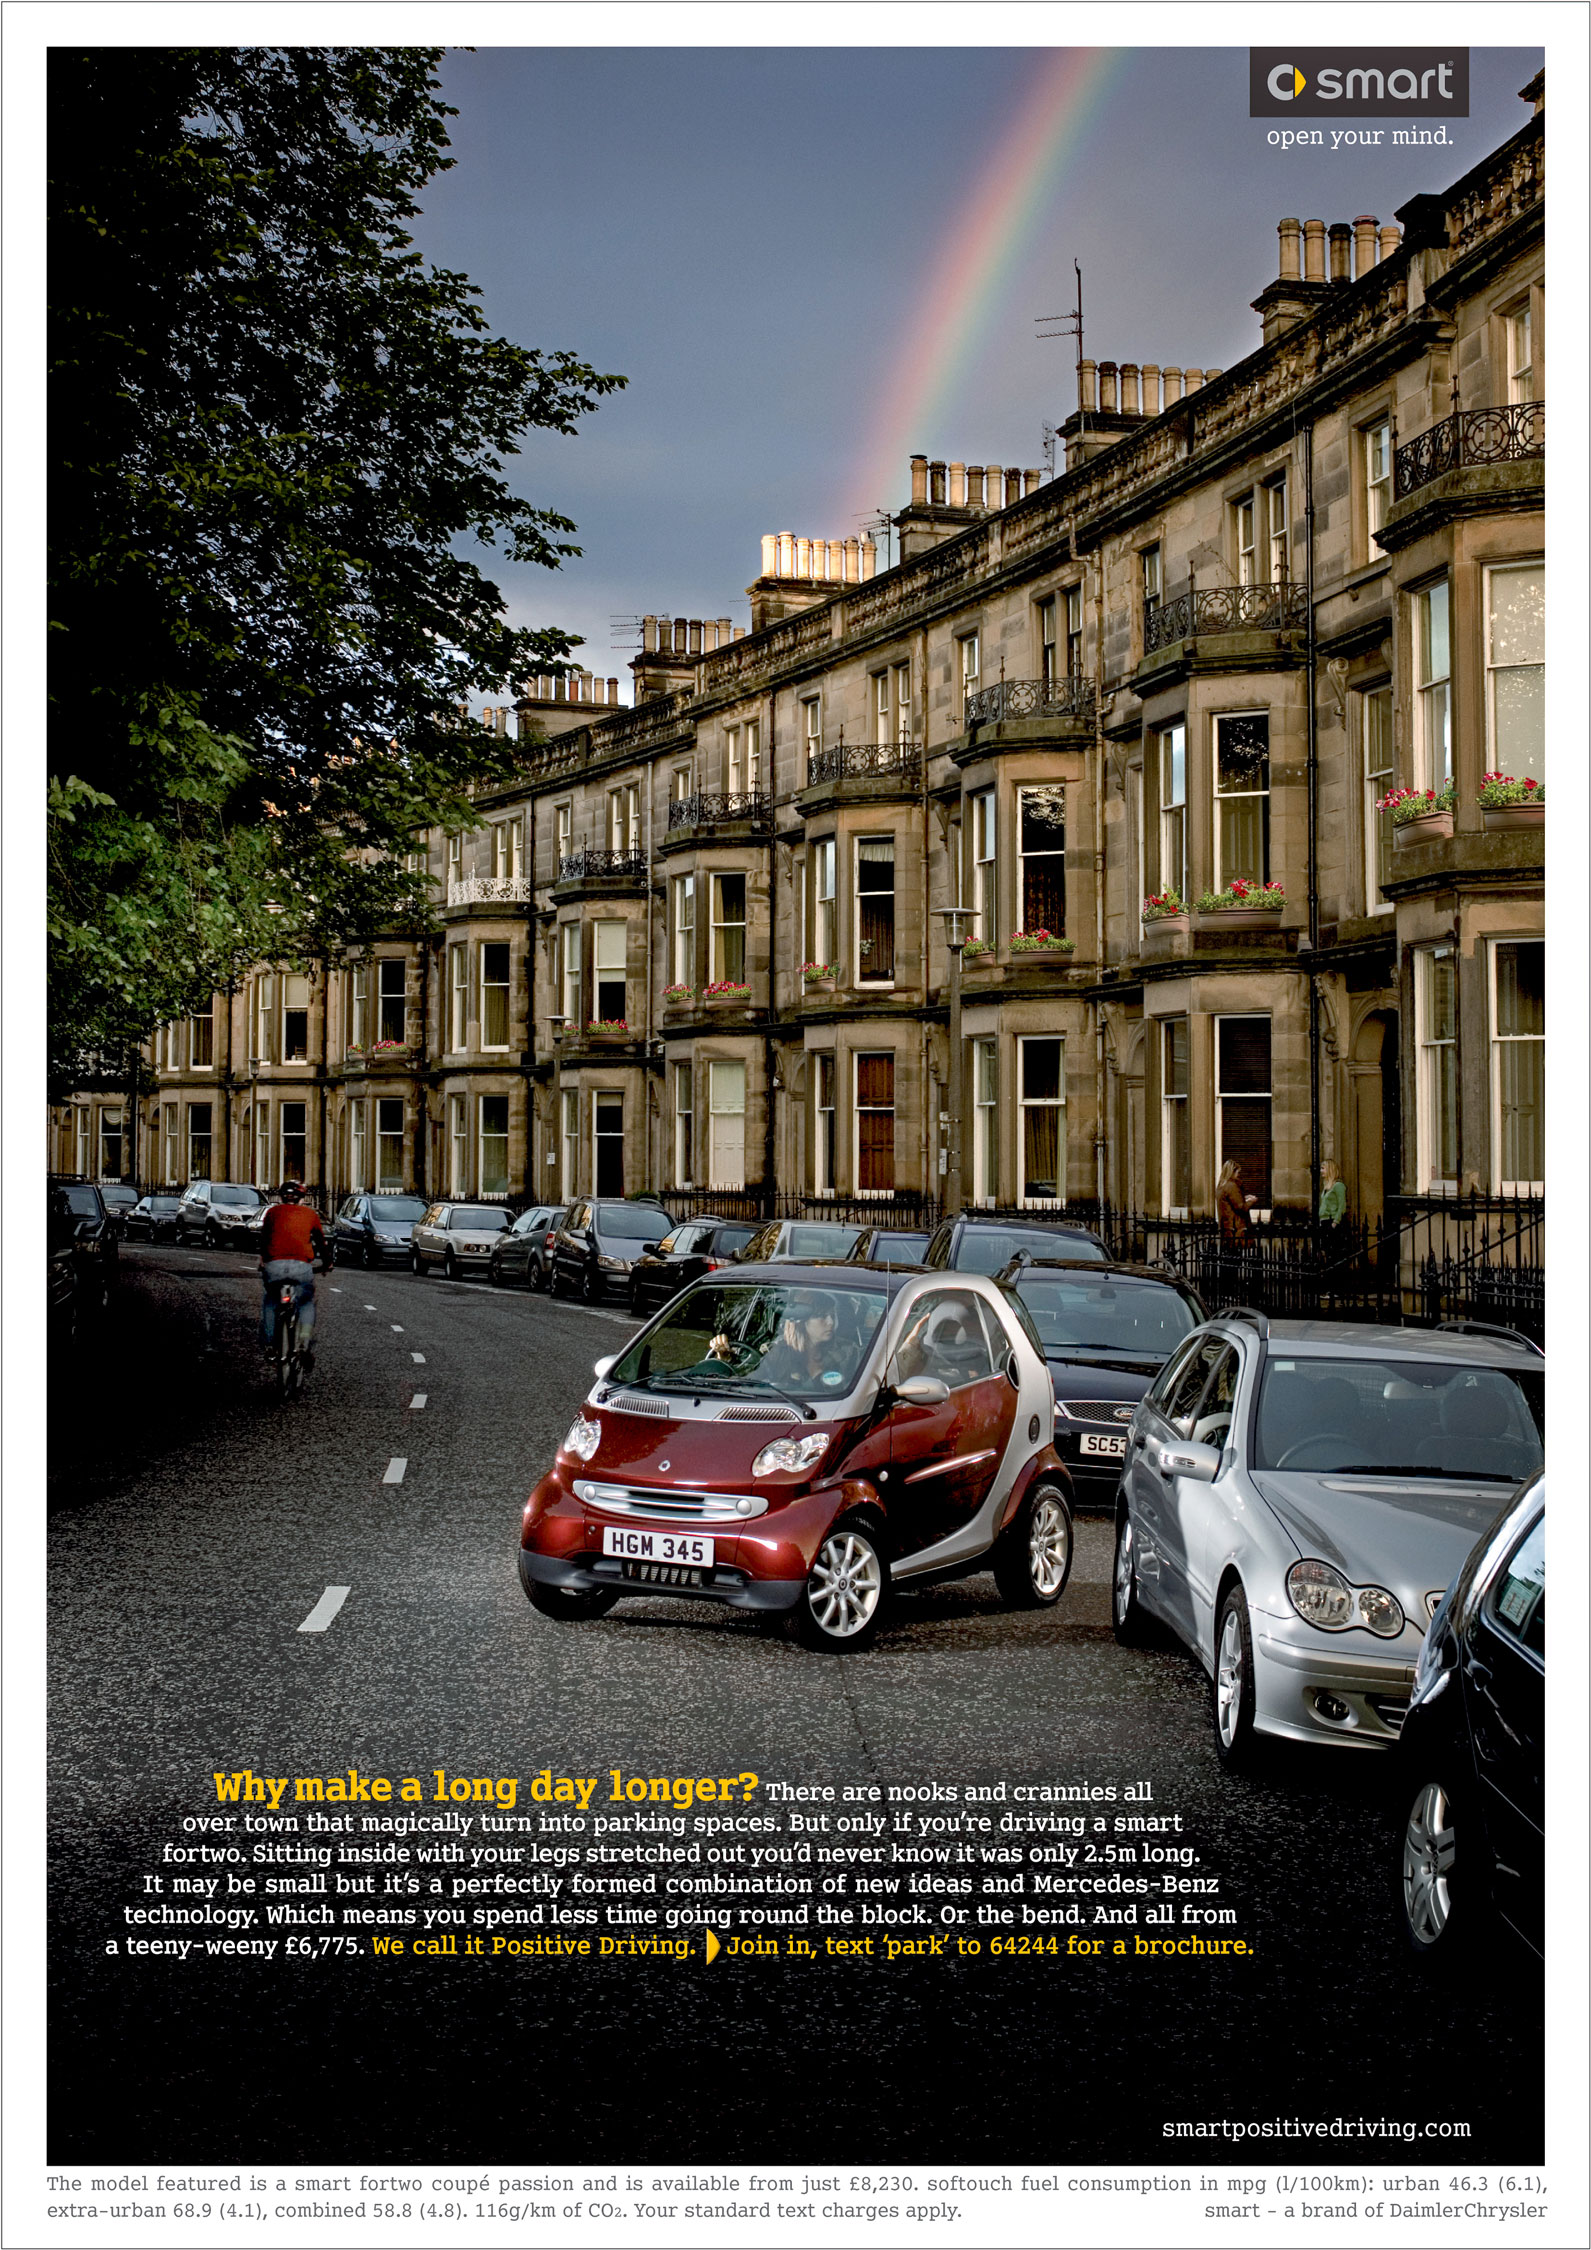 Red Smart car parking in traditional georgian cresent, edinburgh scotland with rainbow from chimney pots